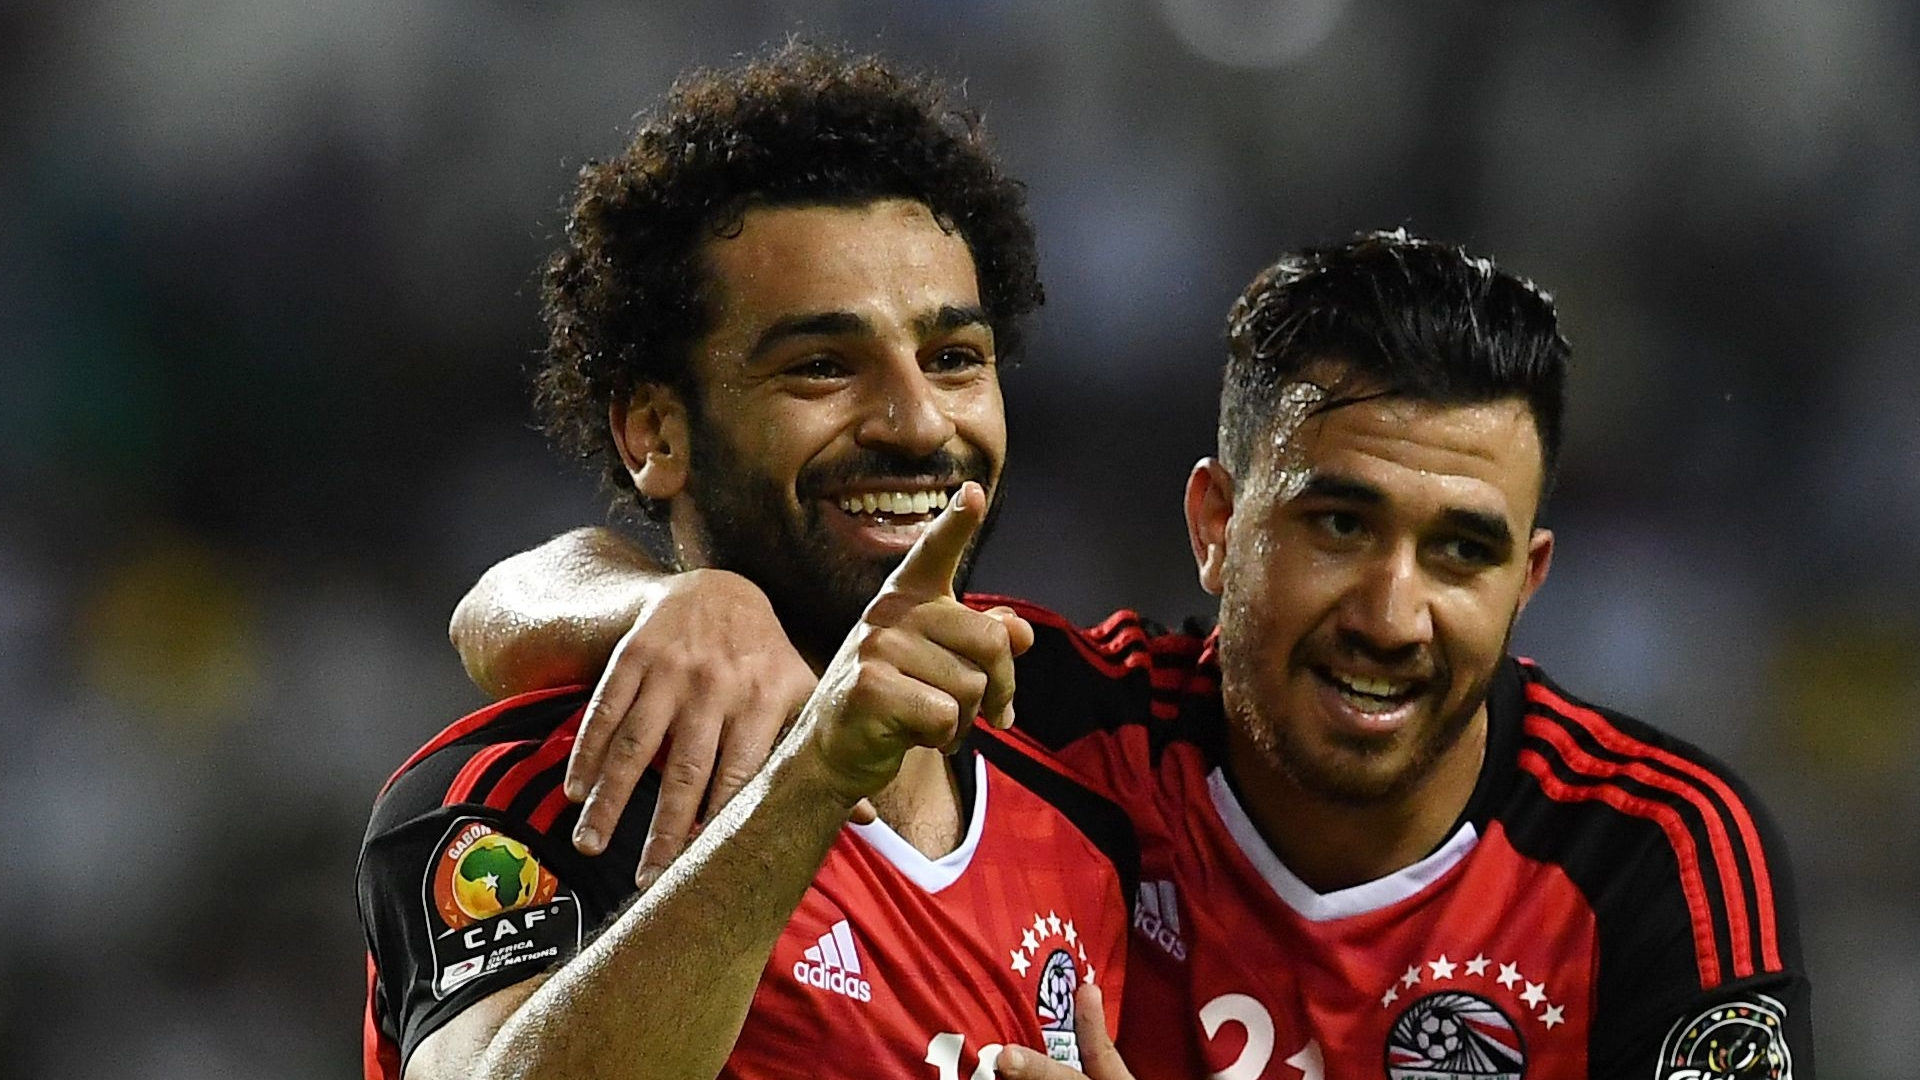 2022 World Cup Qualifiers: Liverpool's Salah & Arsenal's Elneny top Egypt squad for Angola and Gabon games